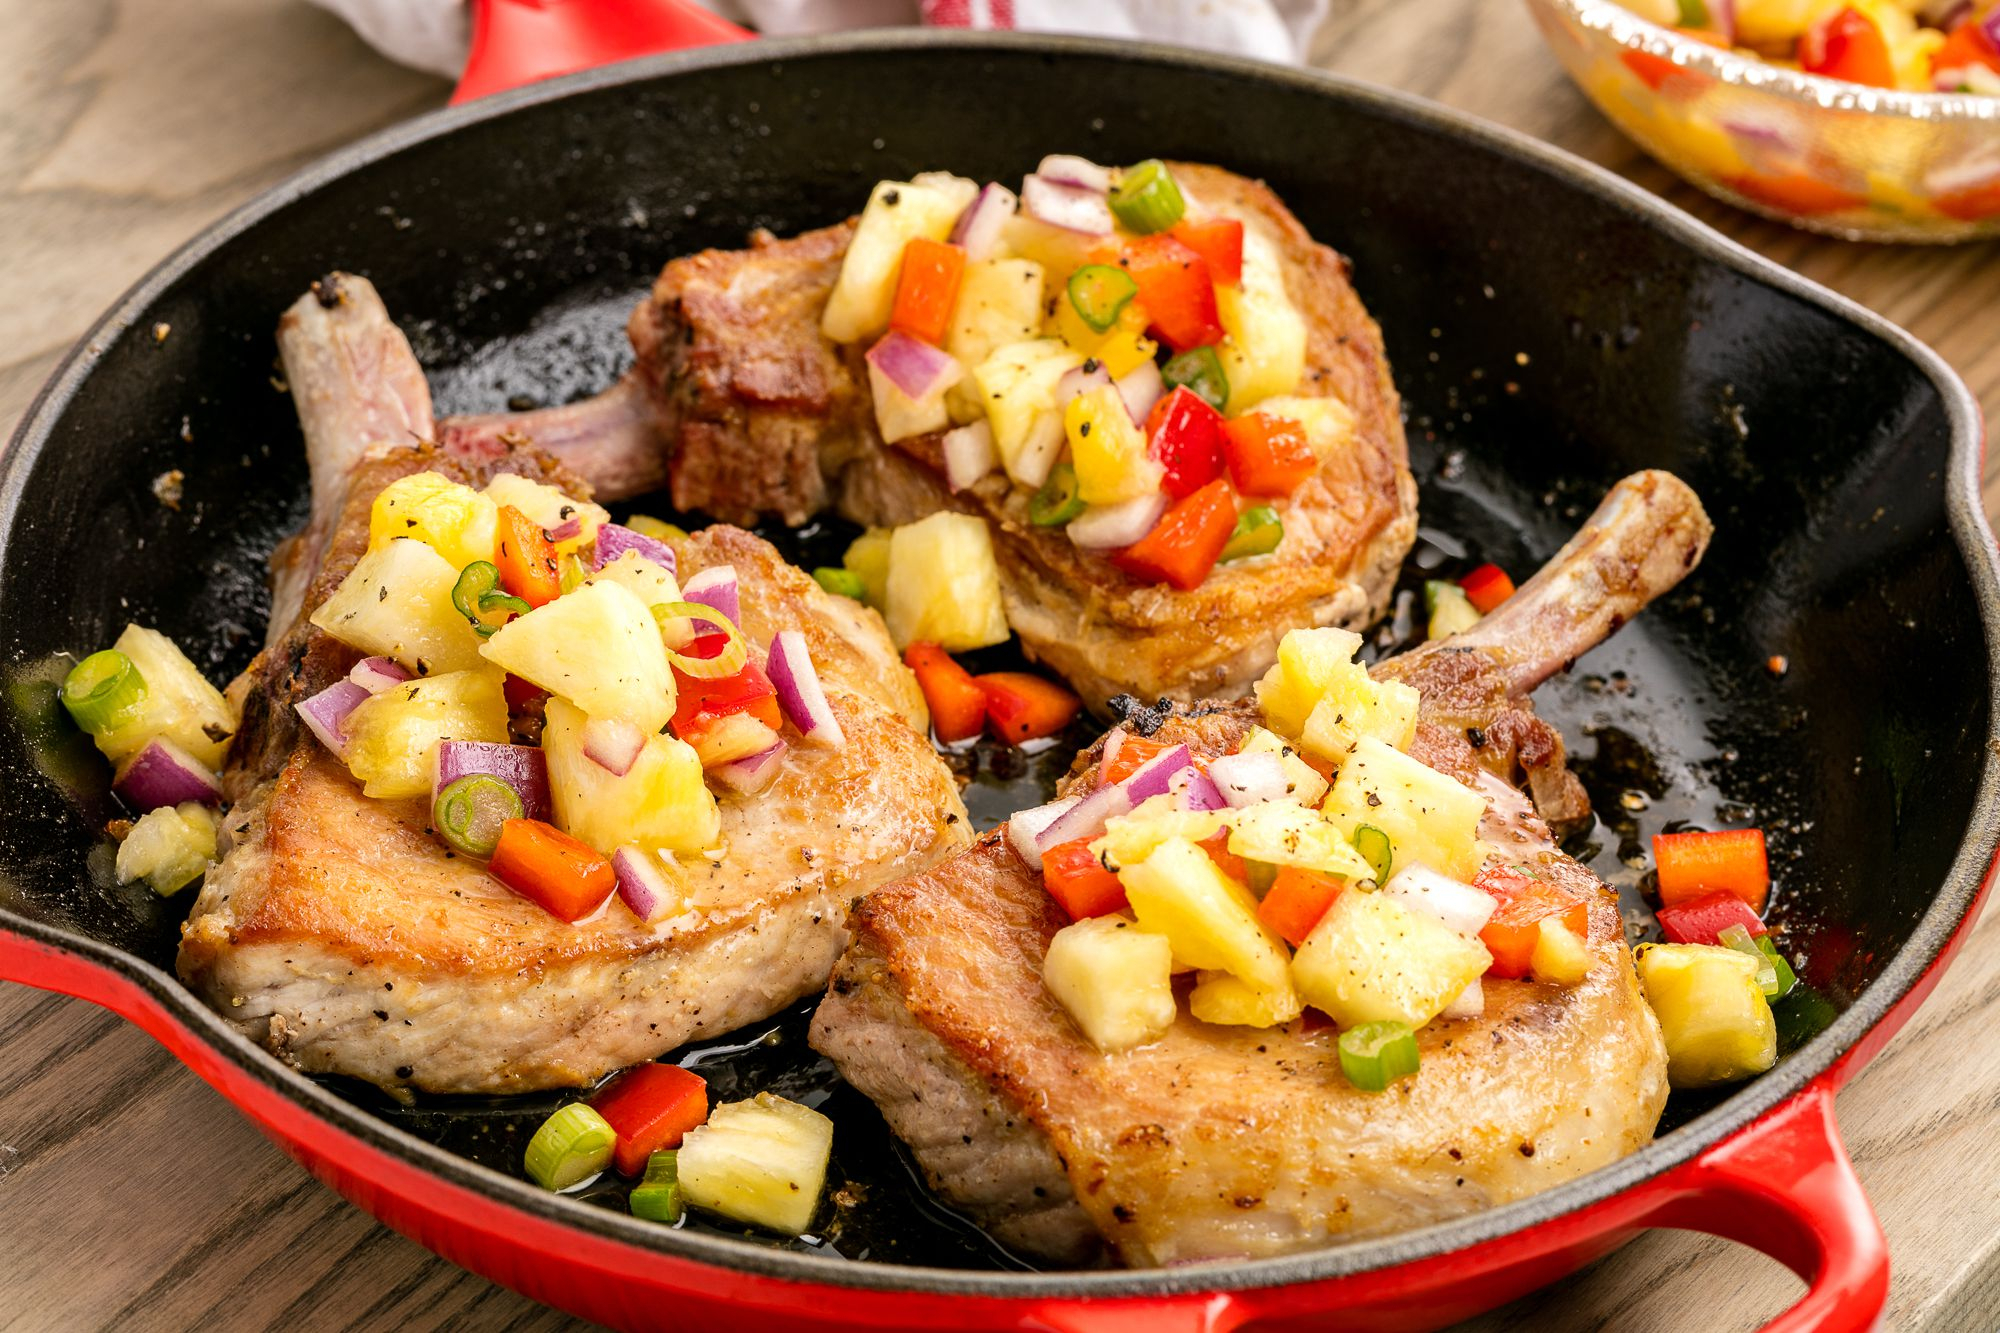 10 Amazing Ideas For Dinner With Pork Chops 30 best pork chop recipes how to cook pork chops delish 2020